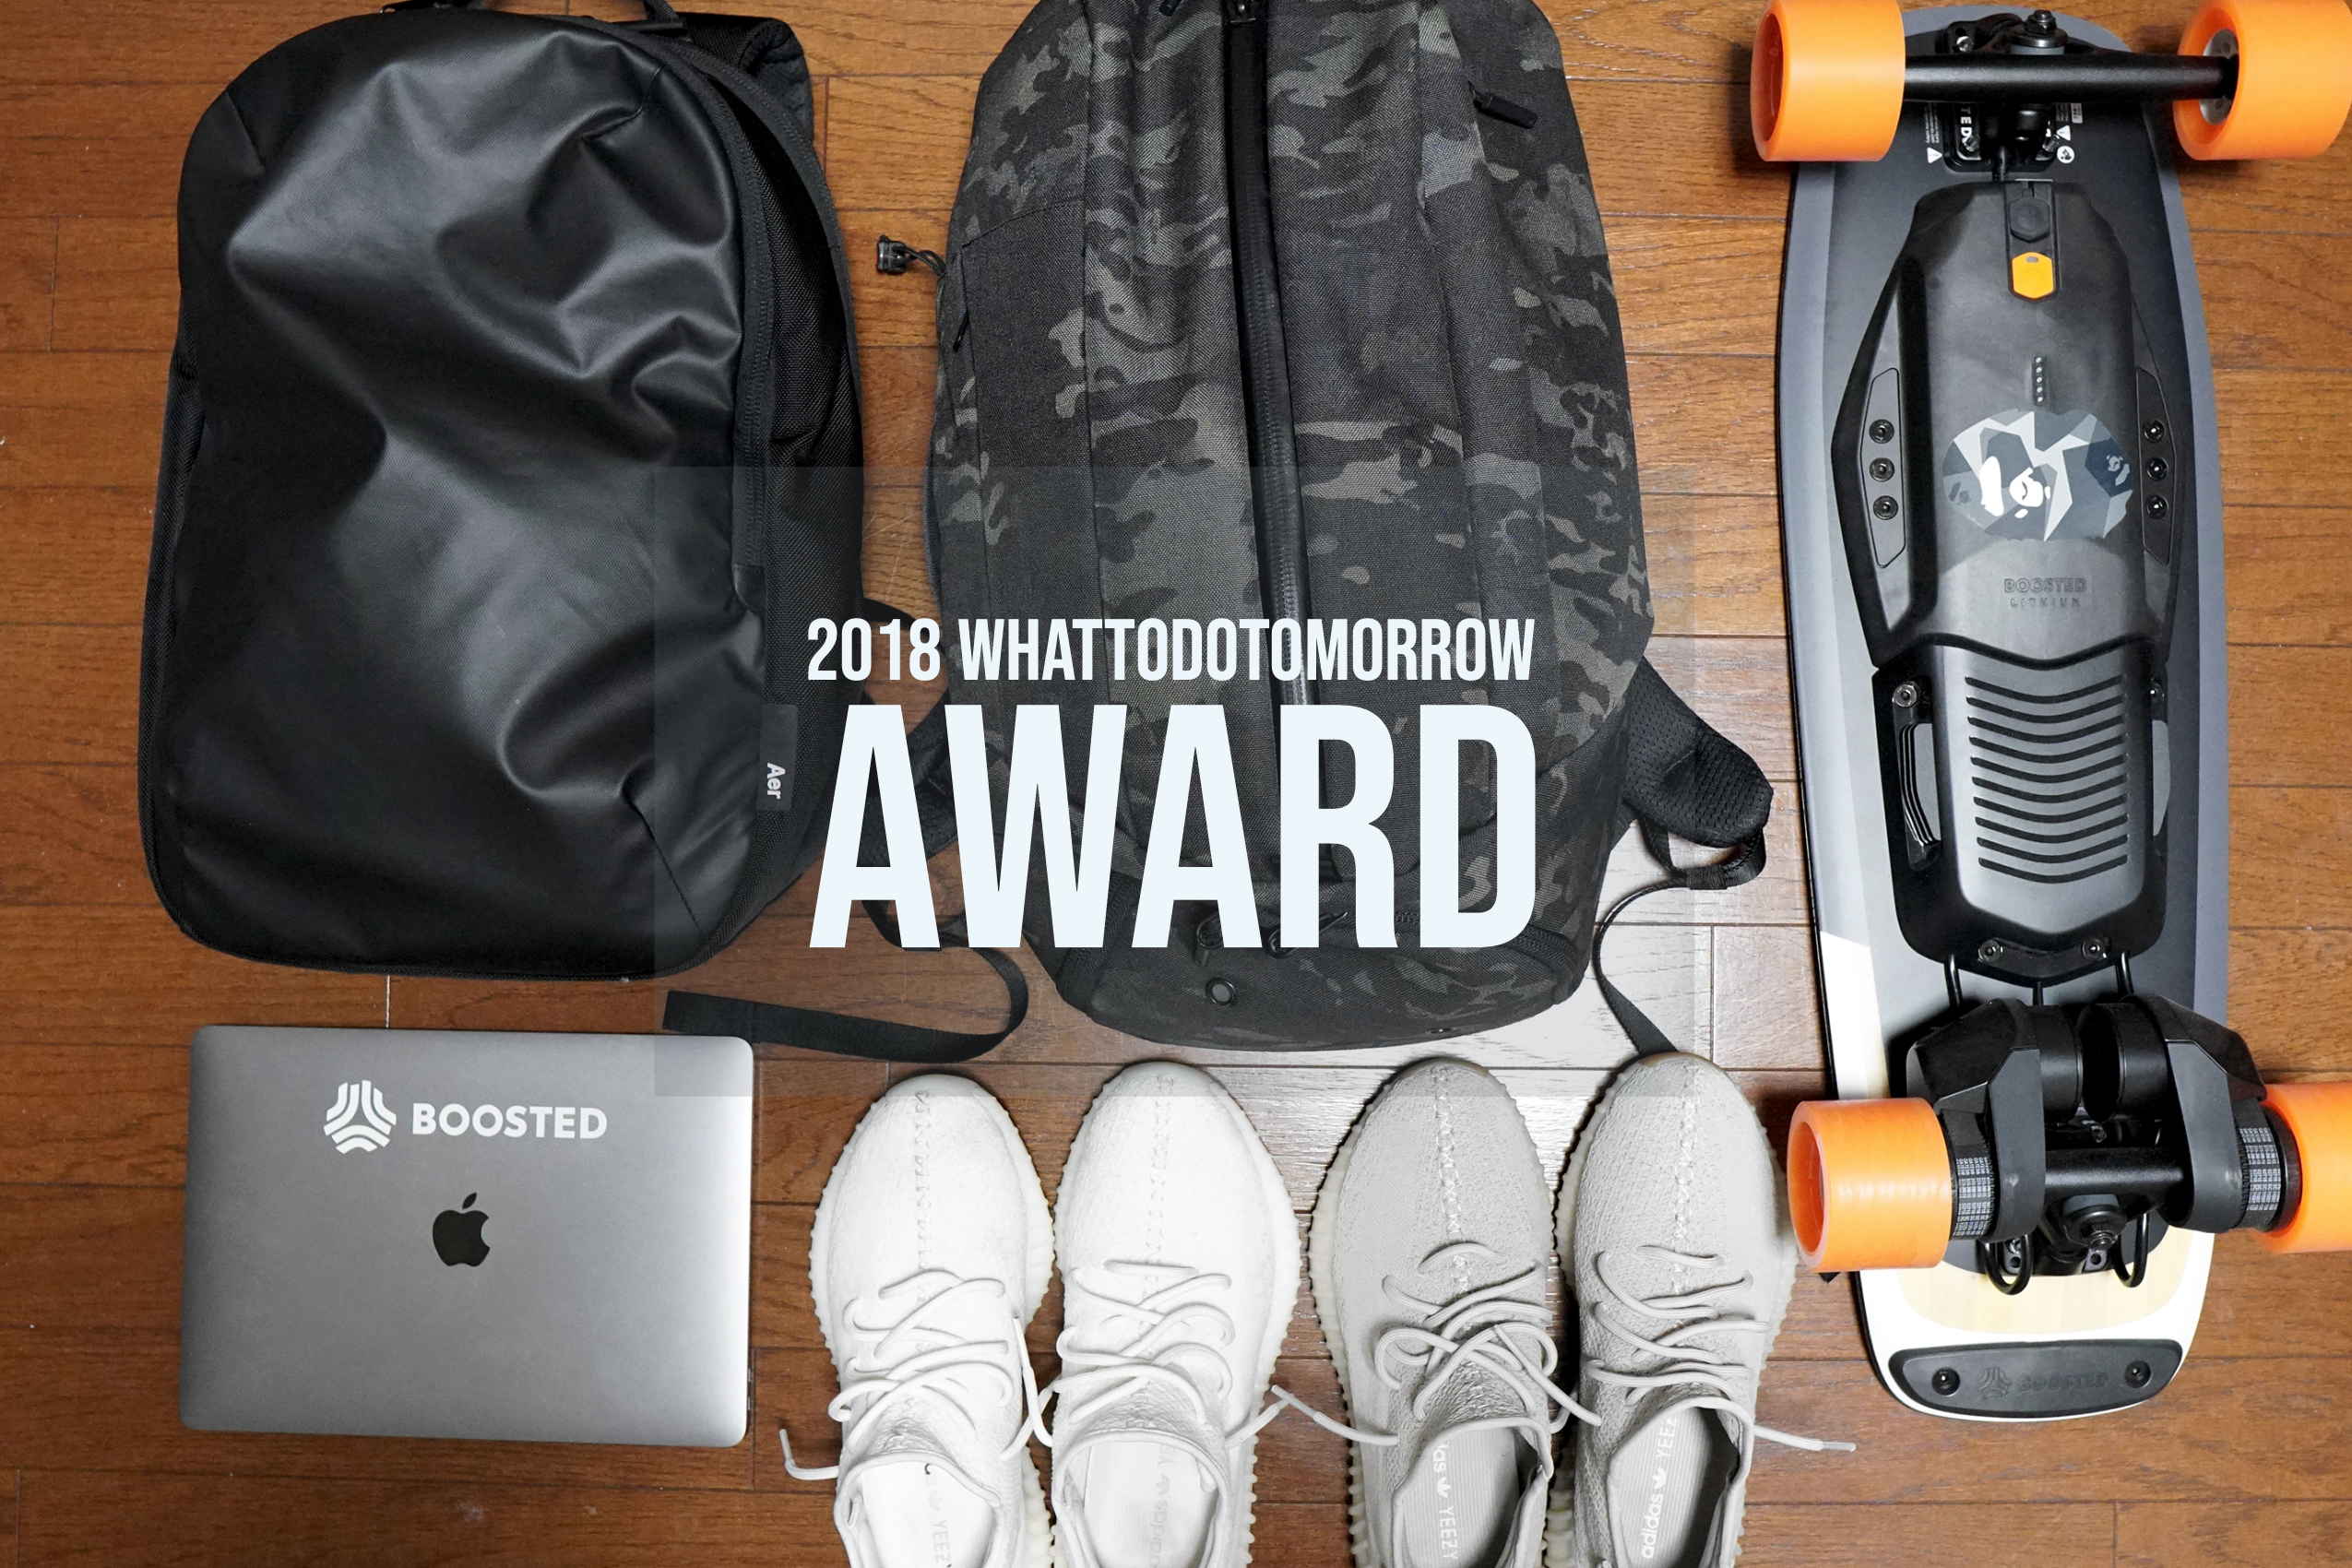 2018 whattodotomorrow awards